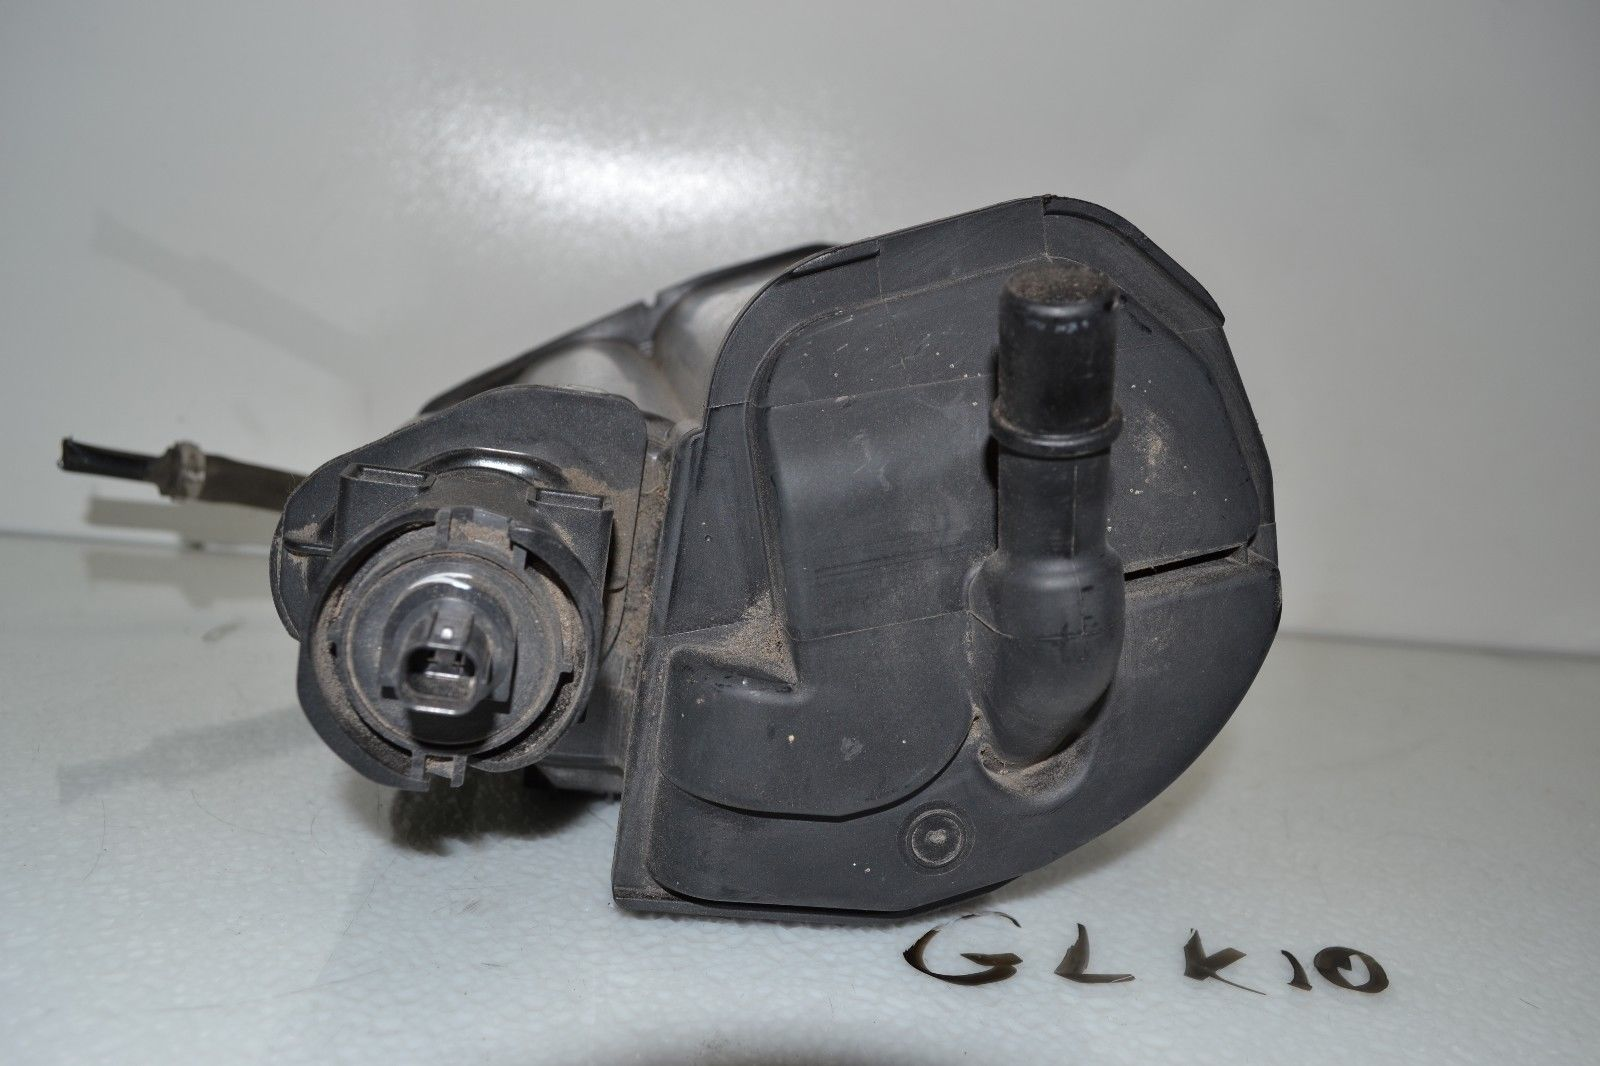 2010-2012 Mercedes GLK350 FUEL VAPOR EVAPORATOR CANISTER OEM 2034700659 Does not apply